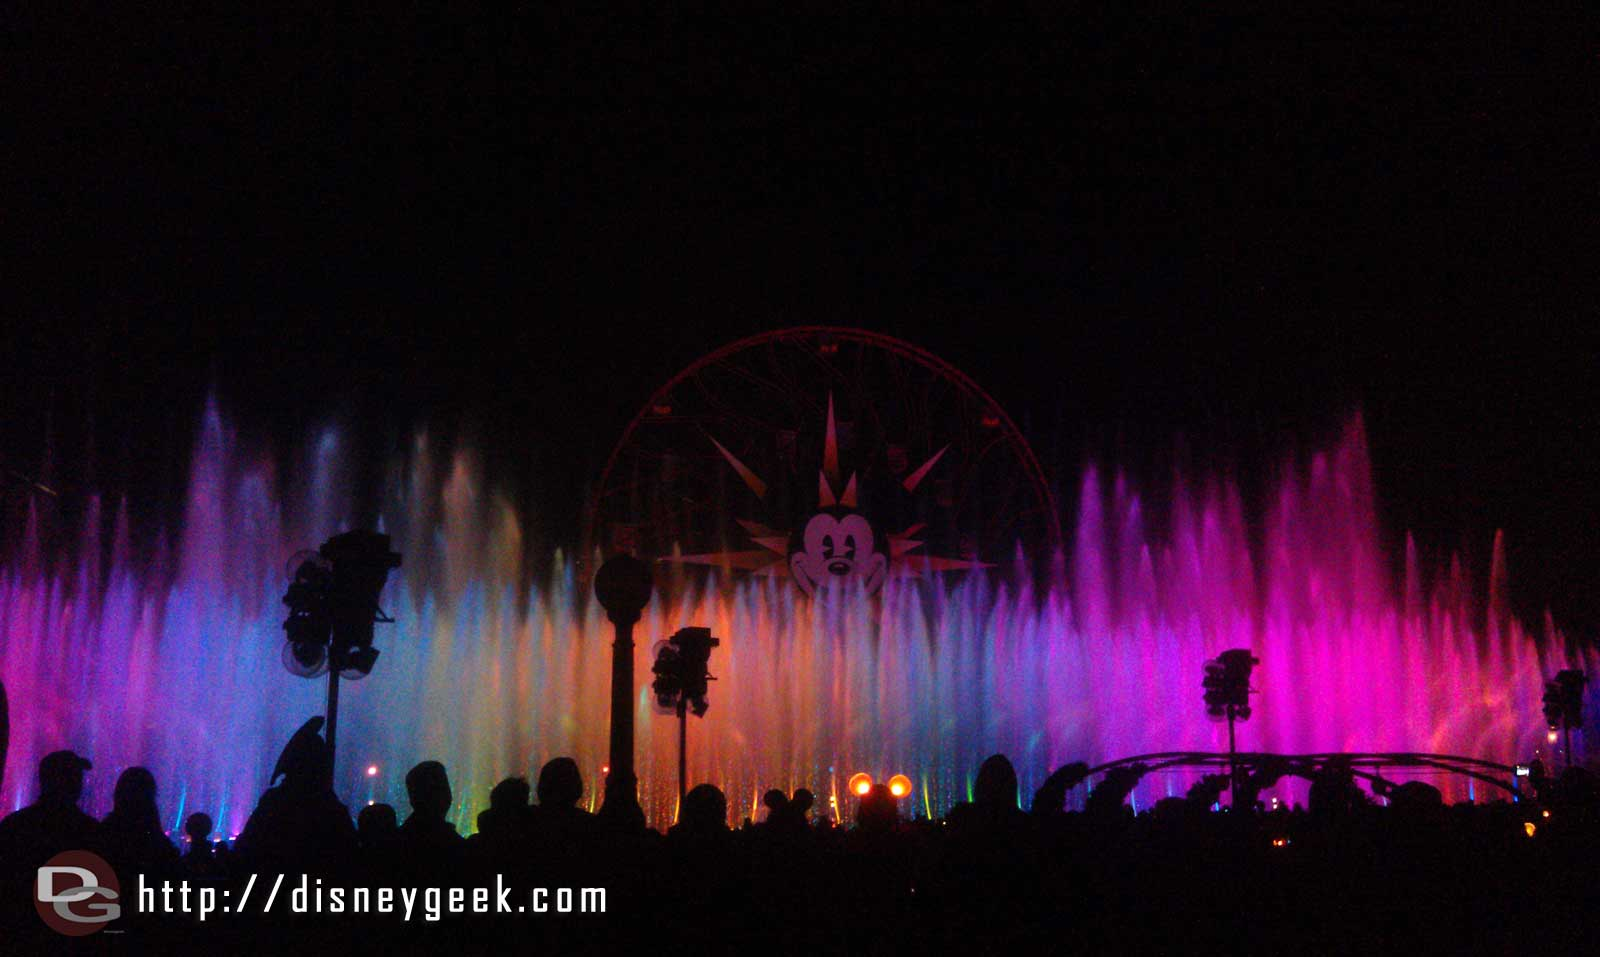 World of Color  FYI Prep and Landing preshow still running this weekend